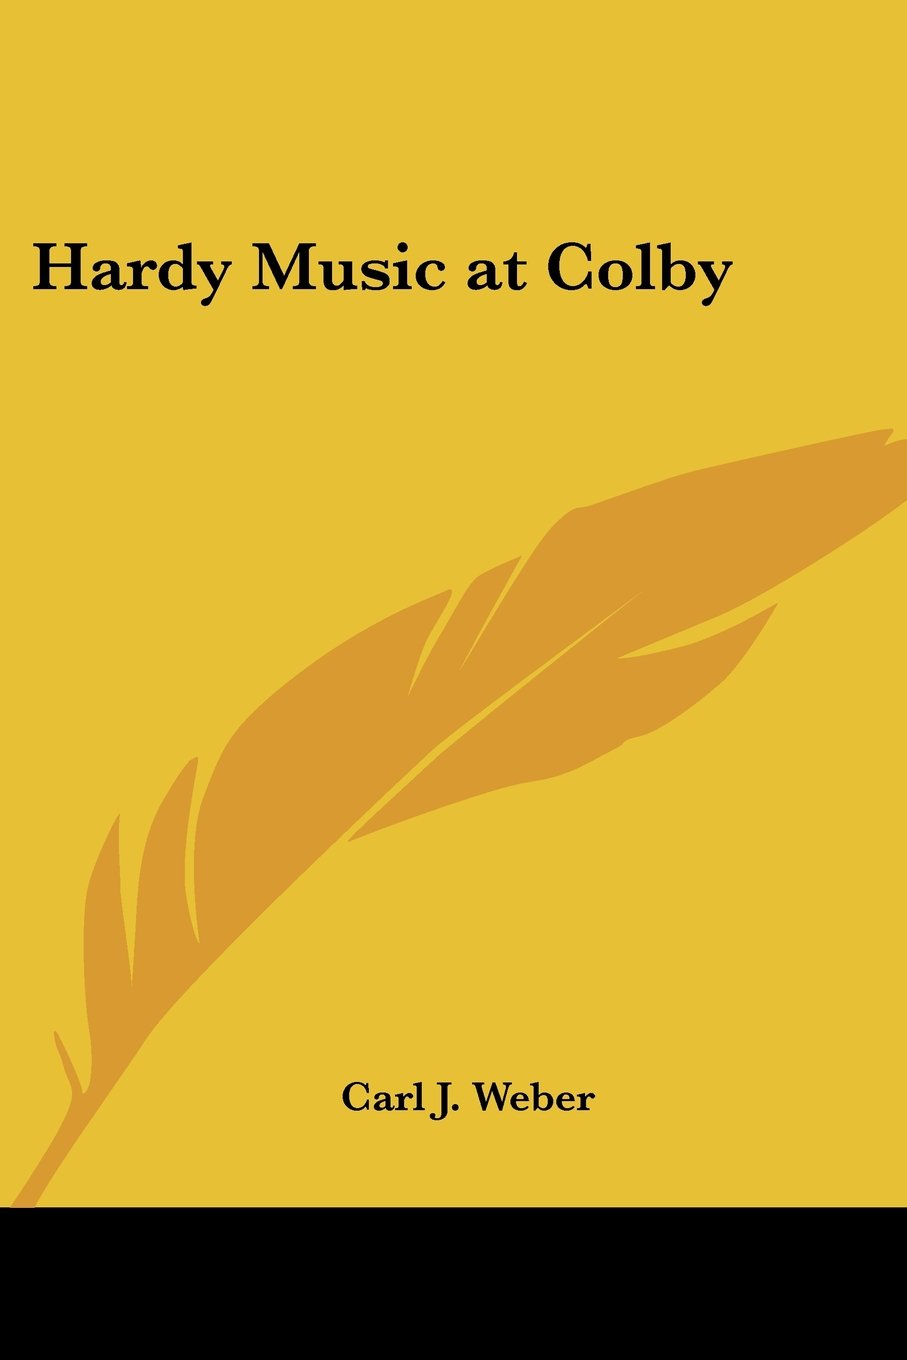 hardy music at colby